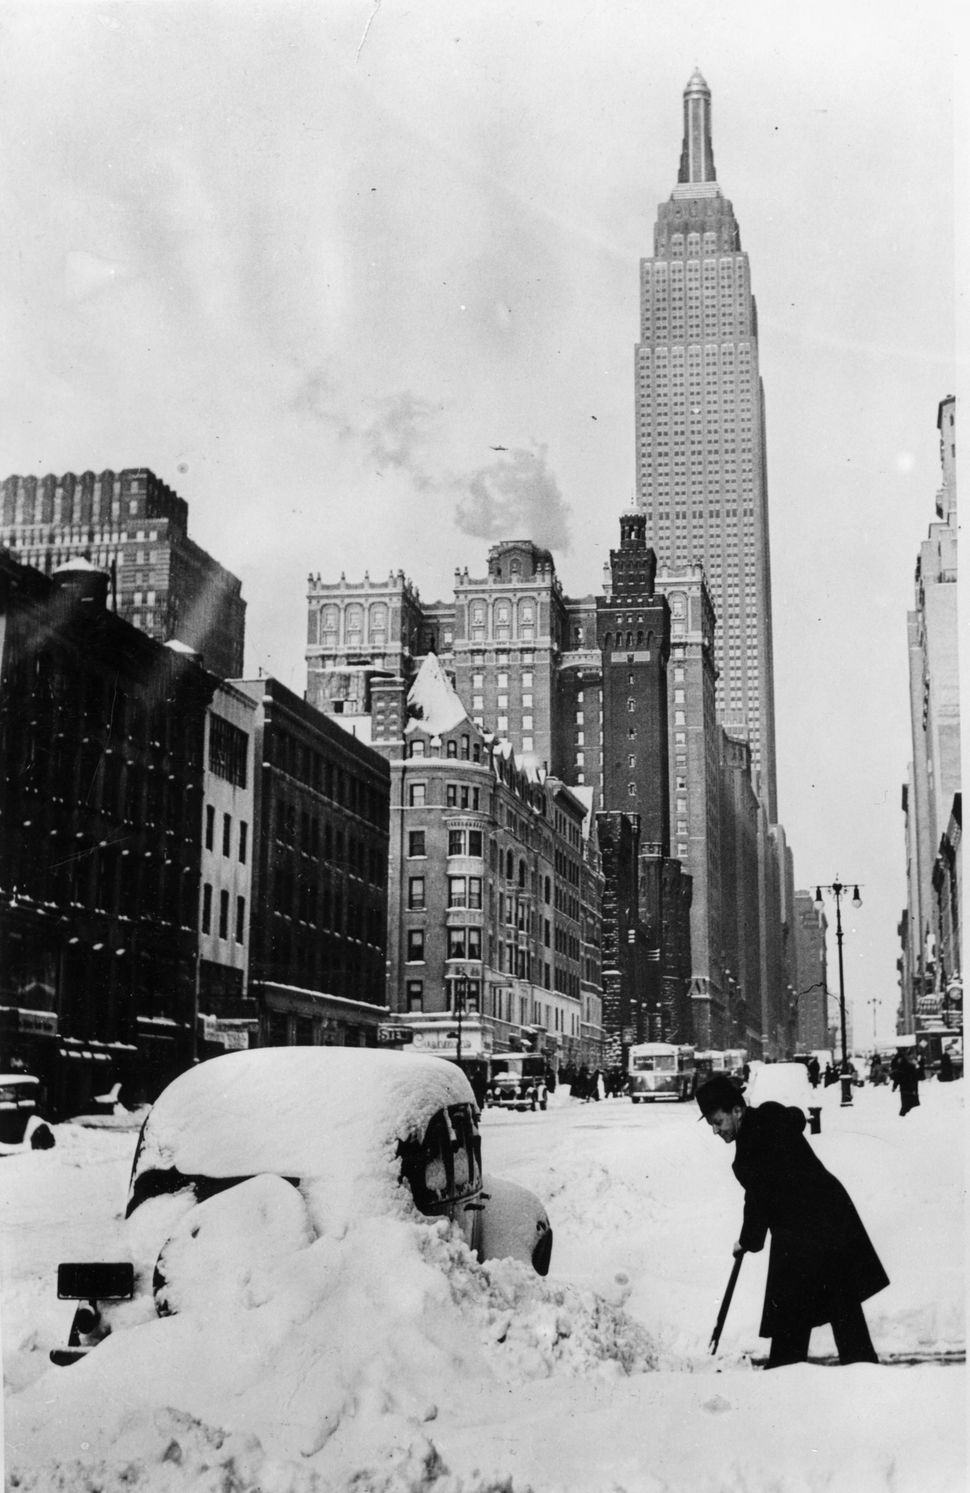 After a surprising snowstorm a driver is clearing the way near the Empire State Building in 1930.